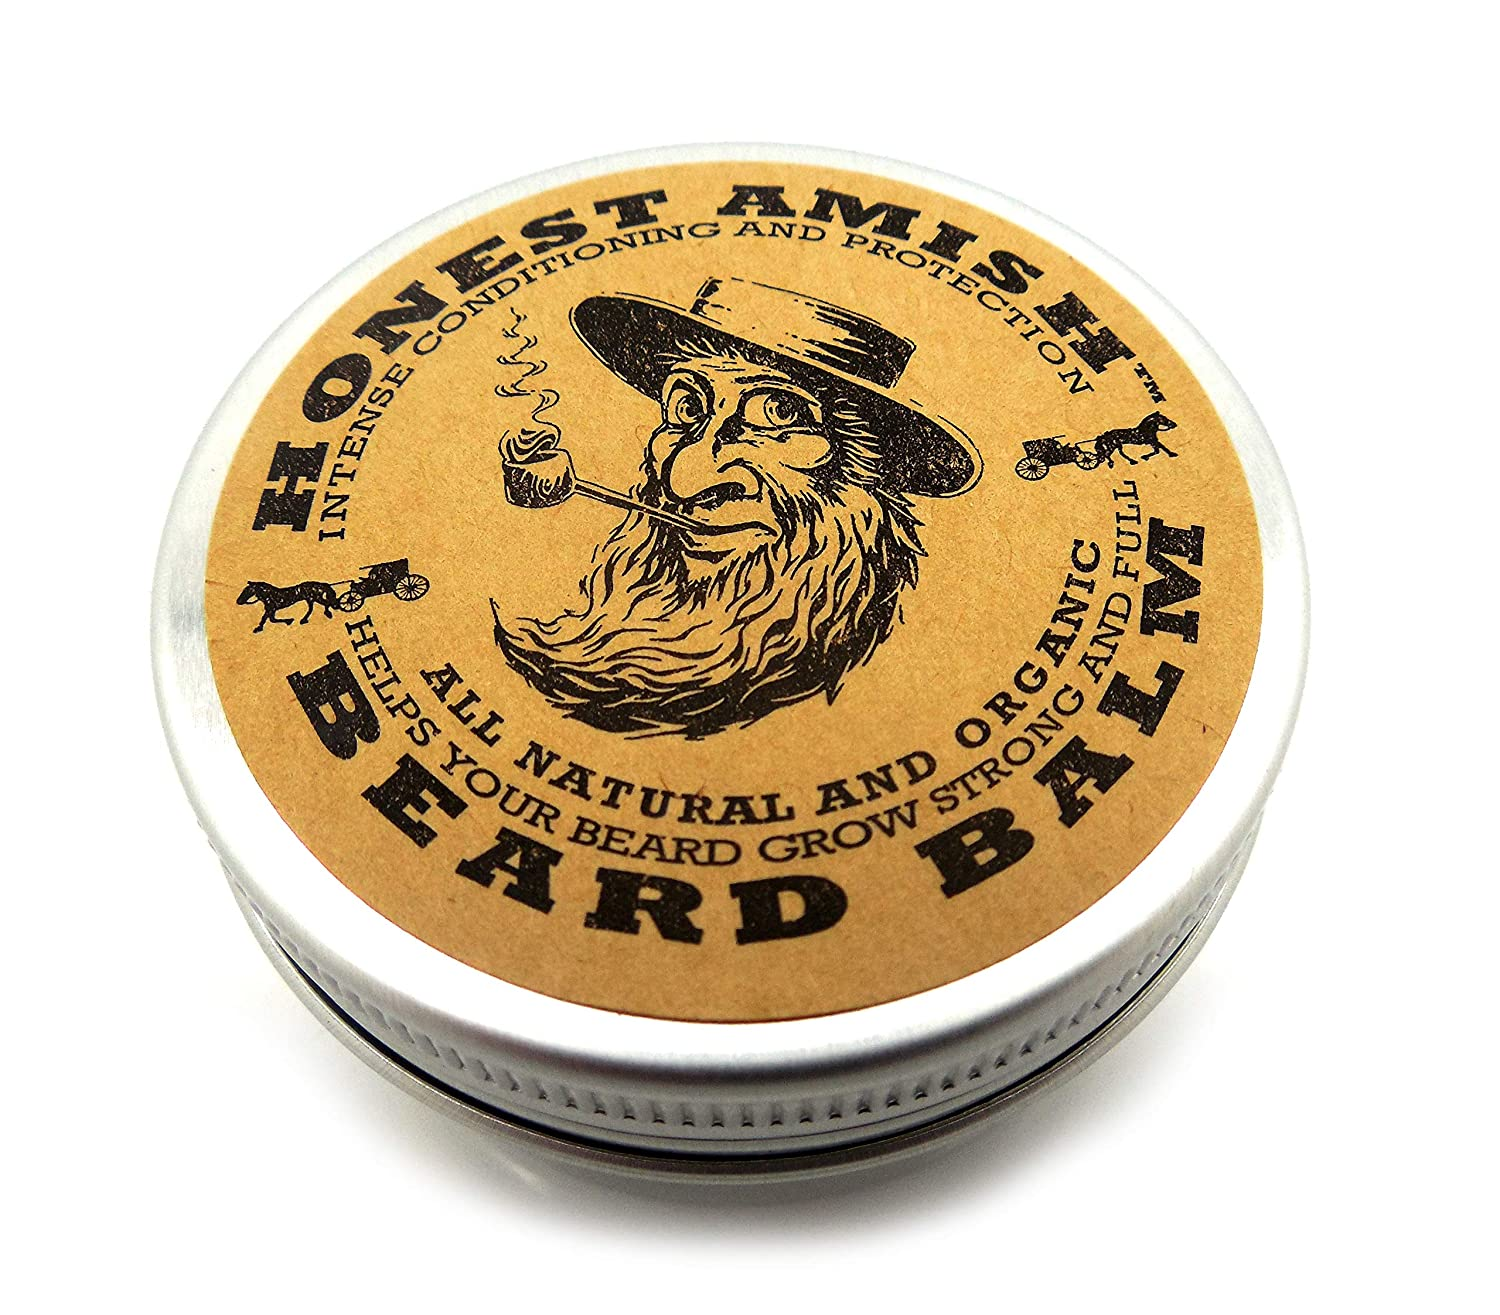 honest amish beard balm leave-in-conditioner, 4oz.